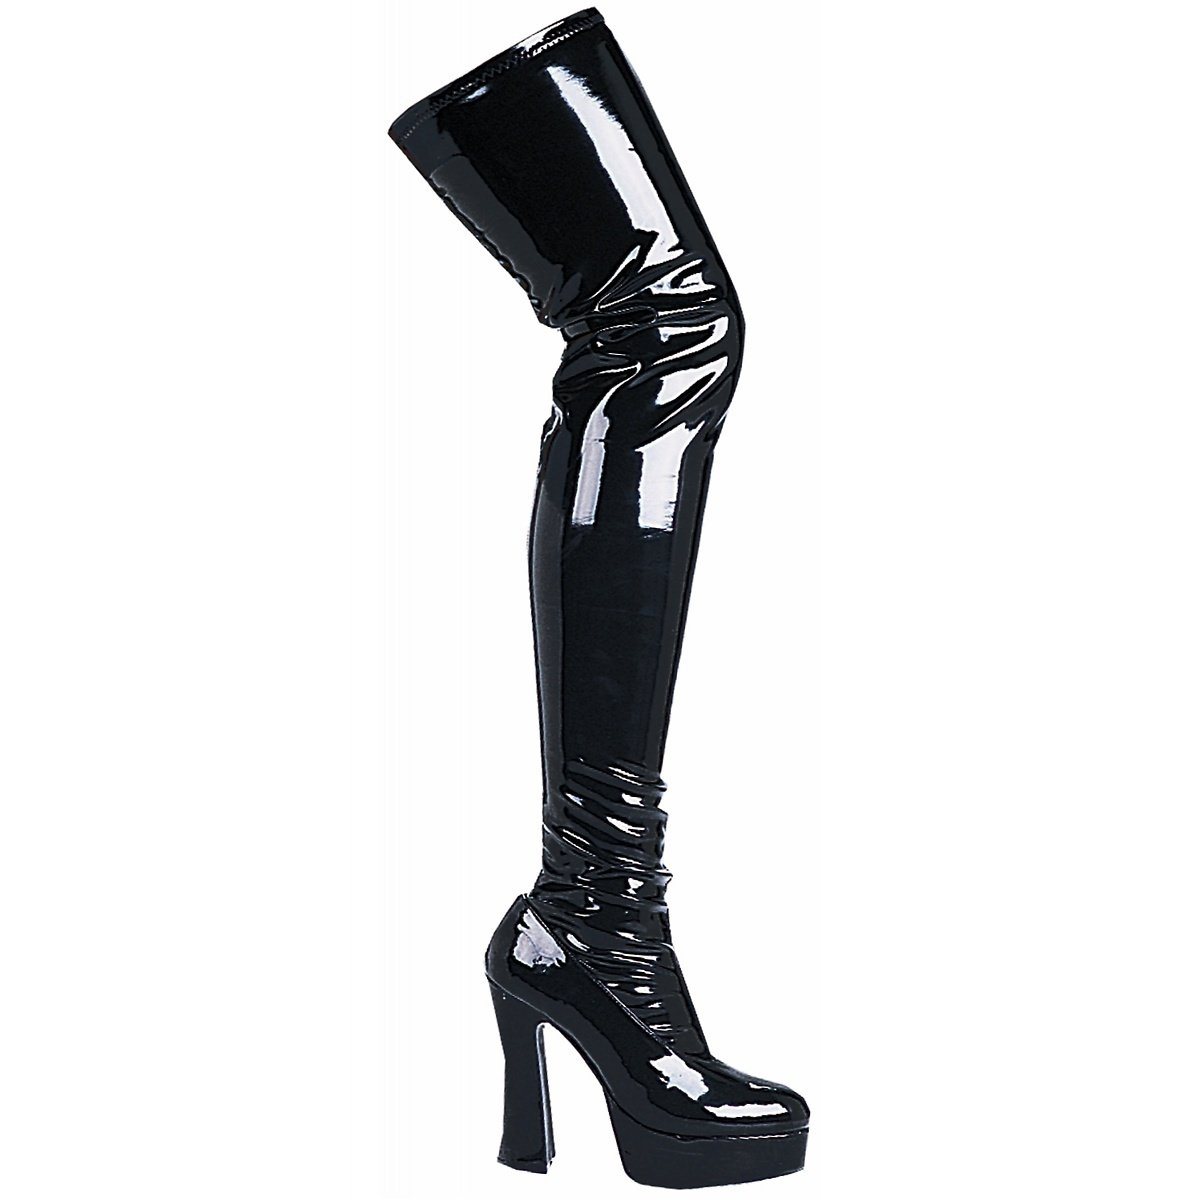 e4152cf5fdec5 Amazon.com: Thrill Thigh High Boots Adult Shoes Black - Size 11 ...